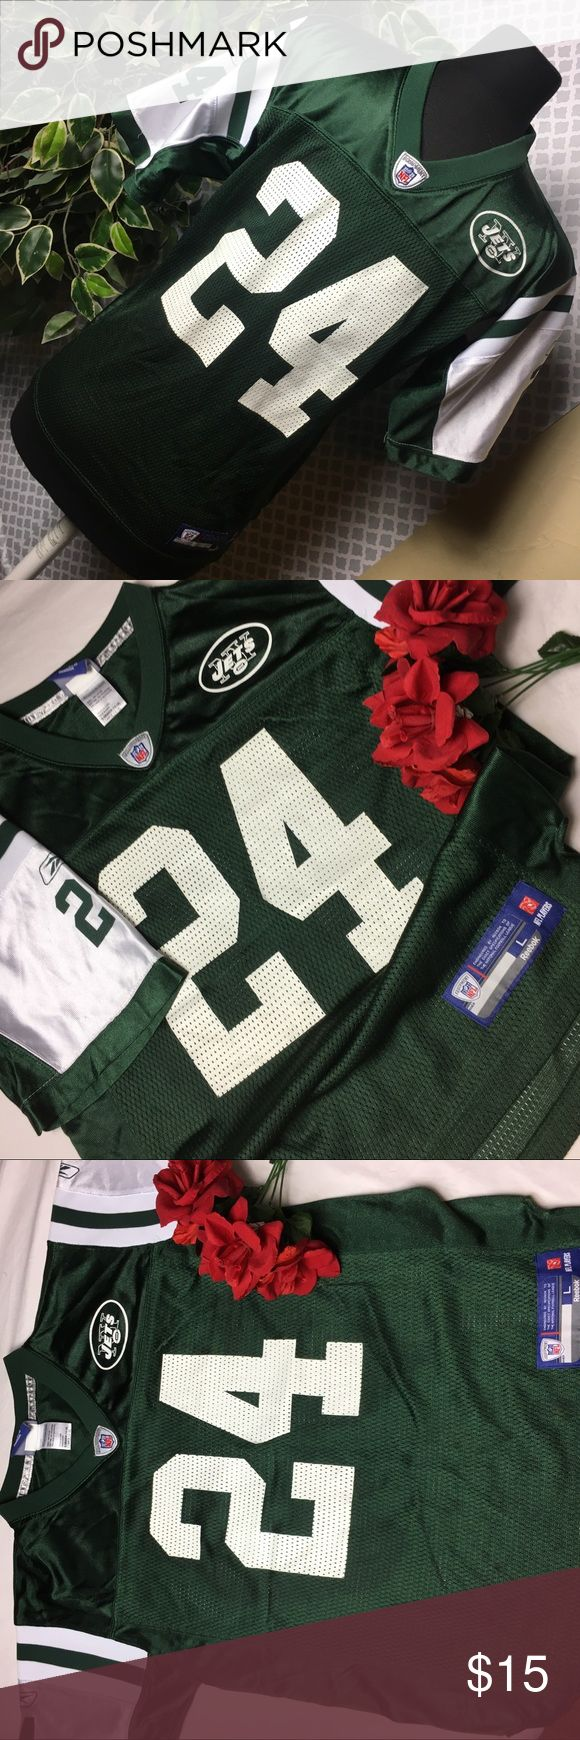 New York jets Revis jersey Reebok on field Excellent condition. No flaws worn twice. Boys 14-16 Reebok Shirts & Tops